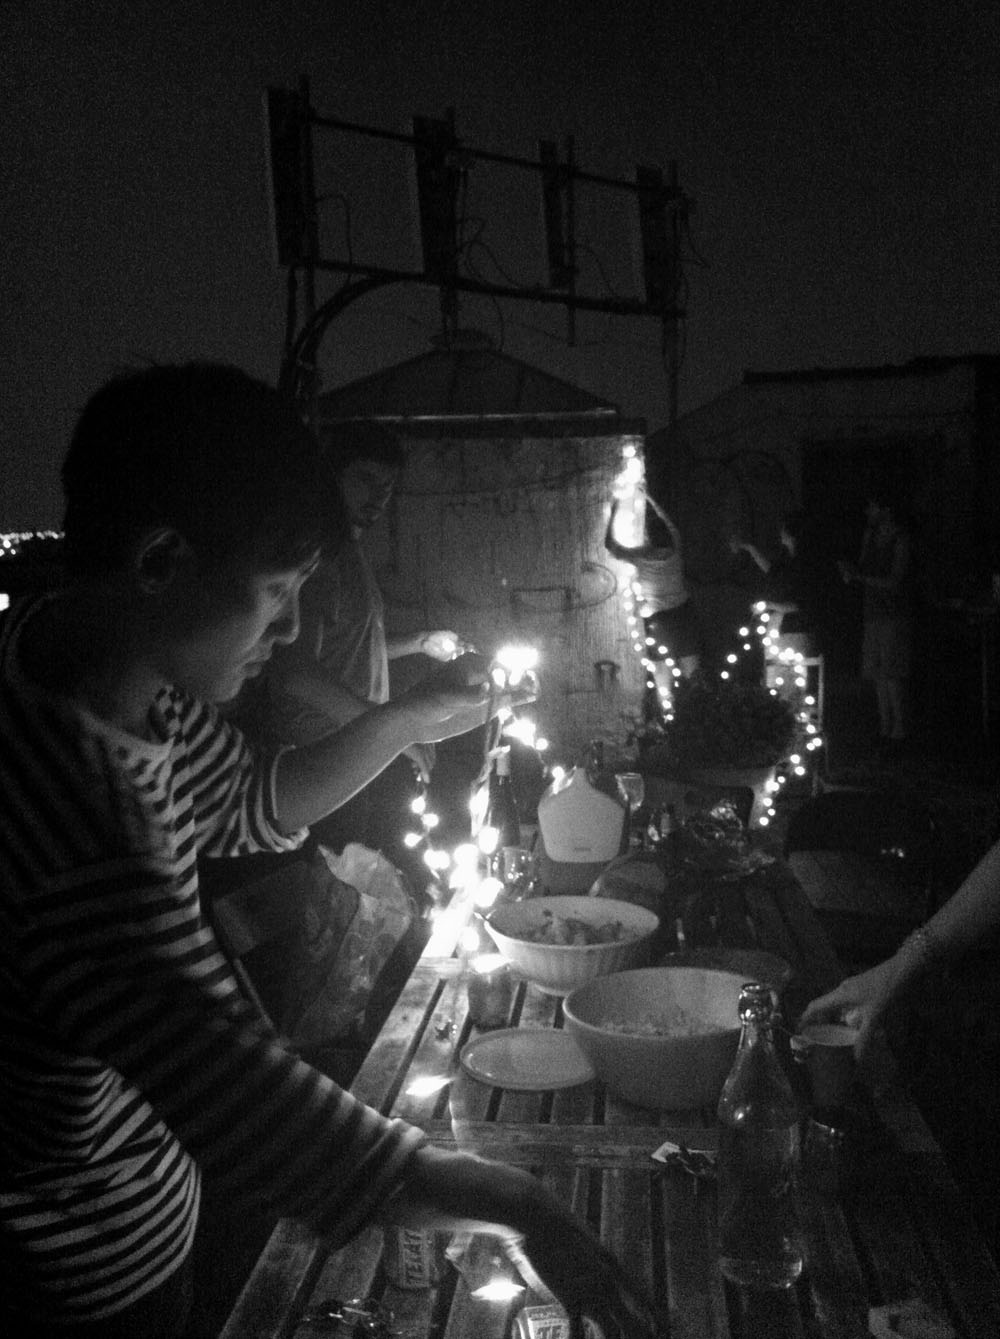 Rooftop party in Bushwick Brooklyn, NY August 2012